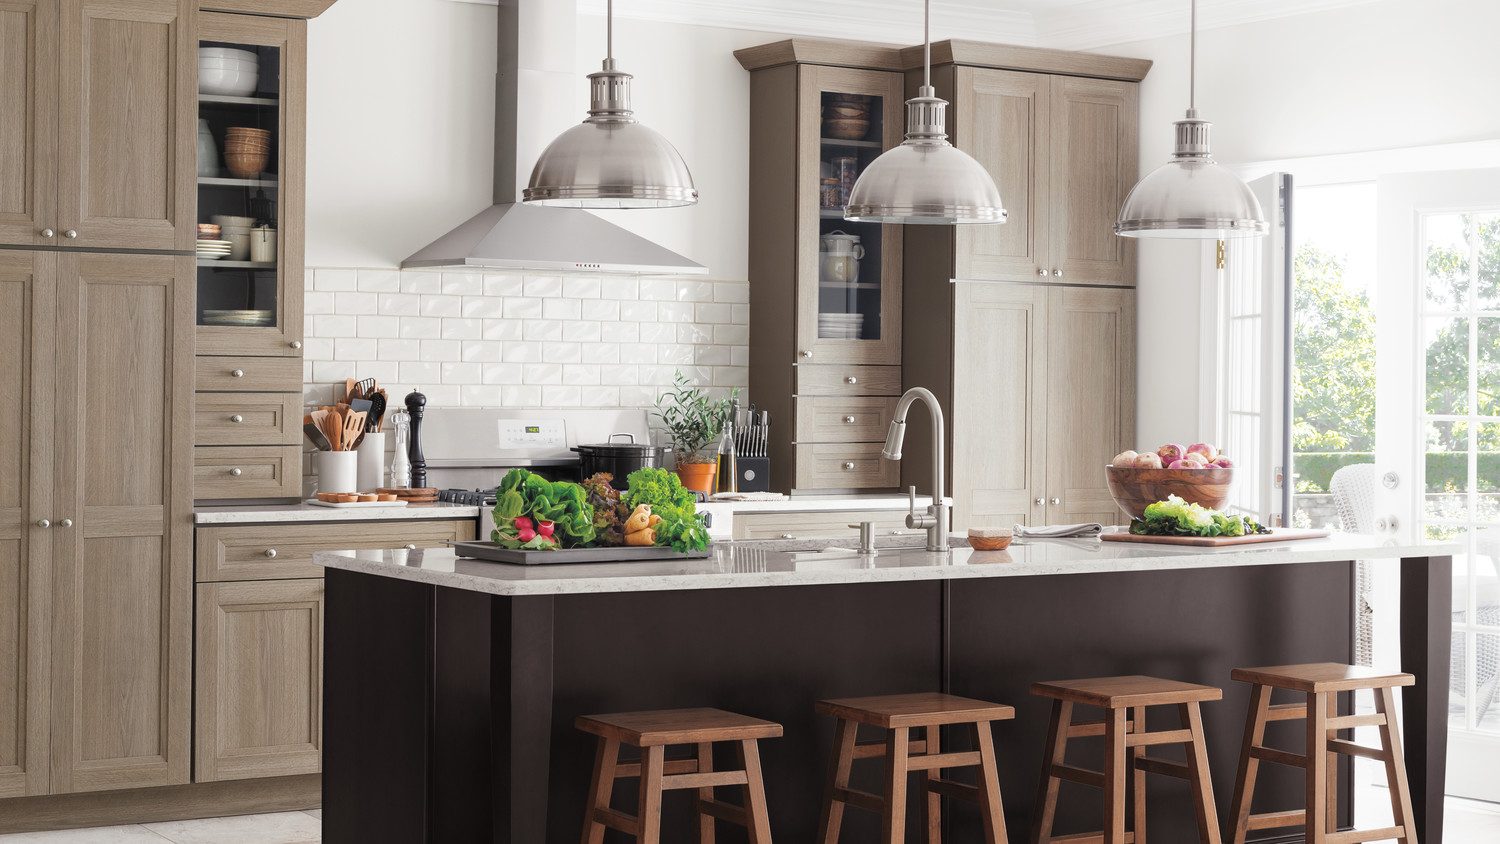 Kitchen Design Video video: ask martha: the inspiration behind martha's kitchens